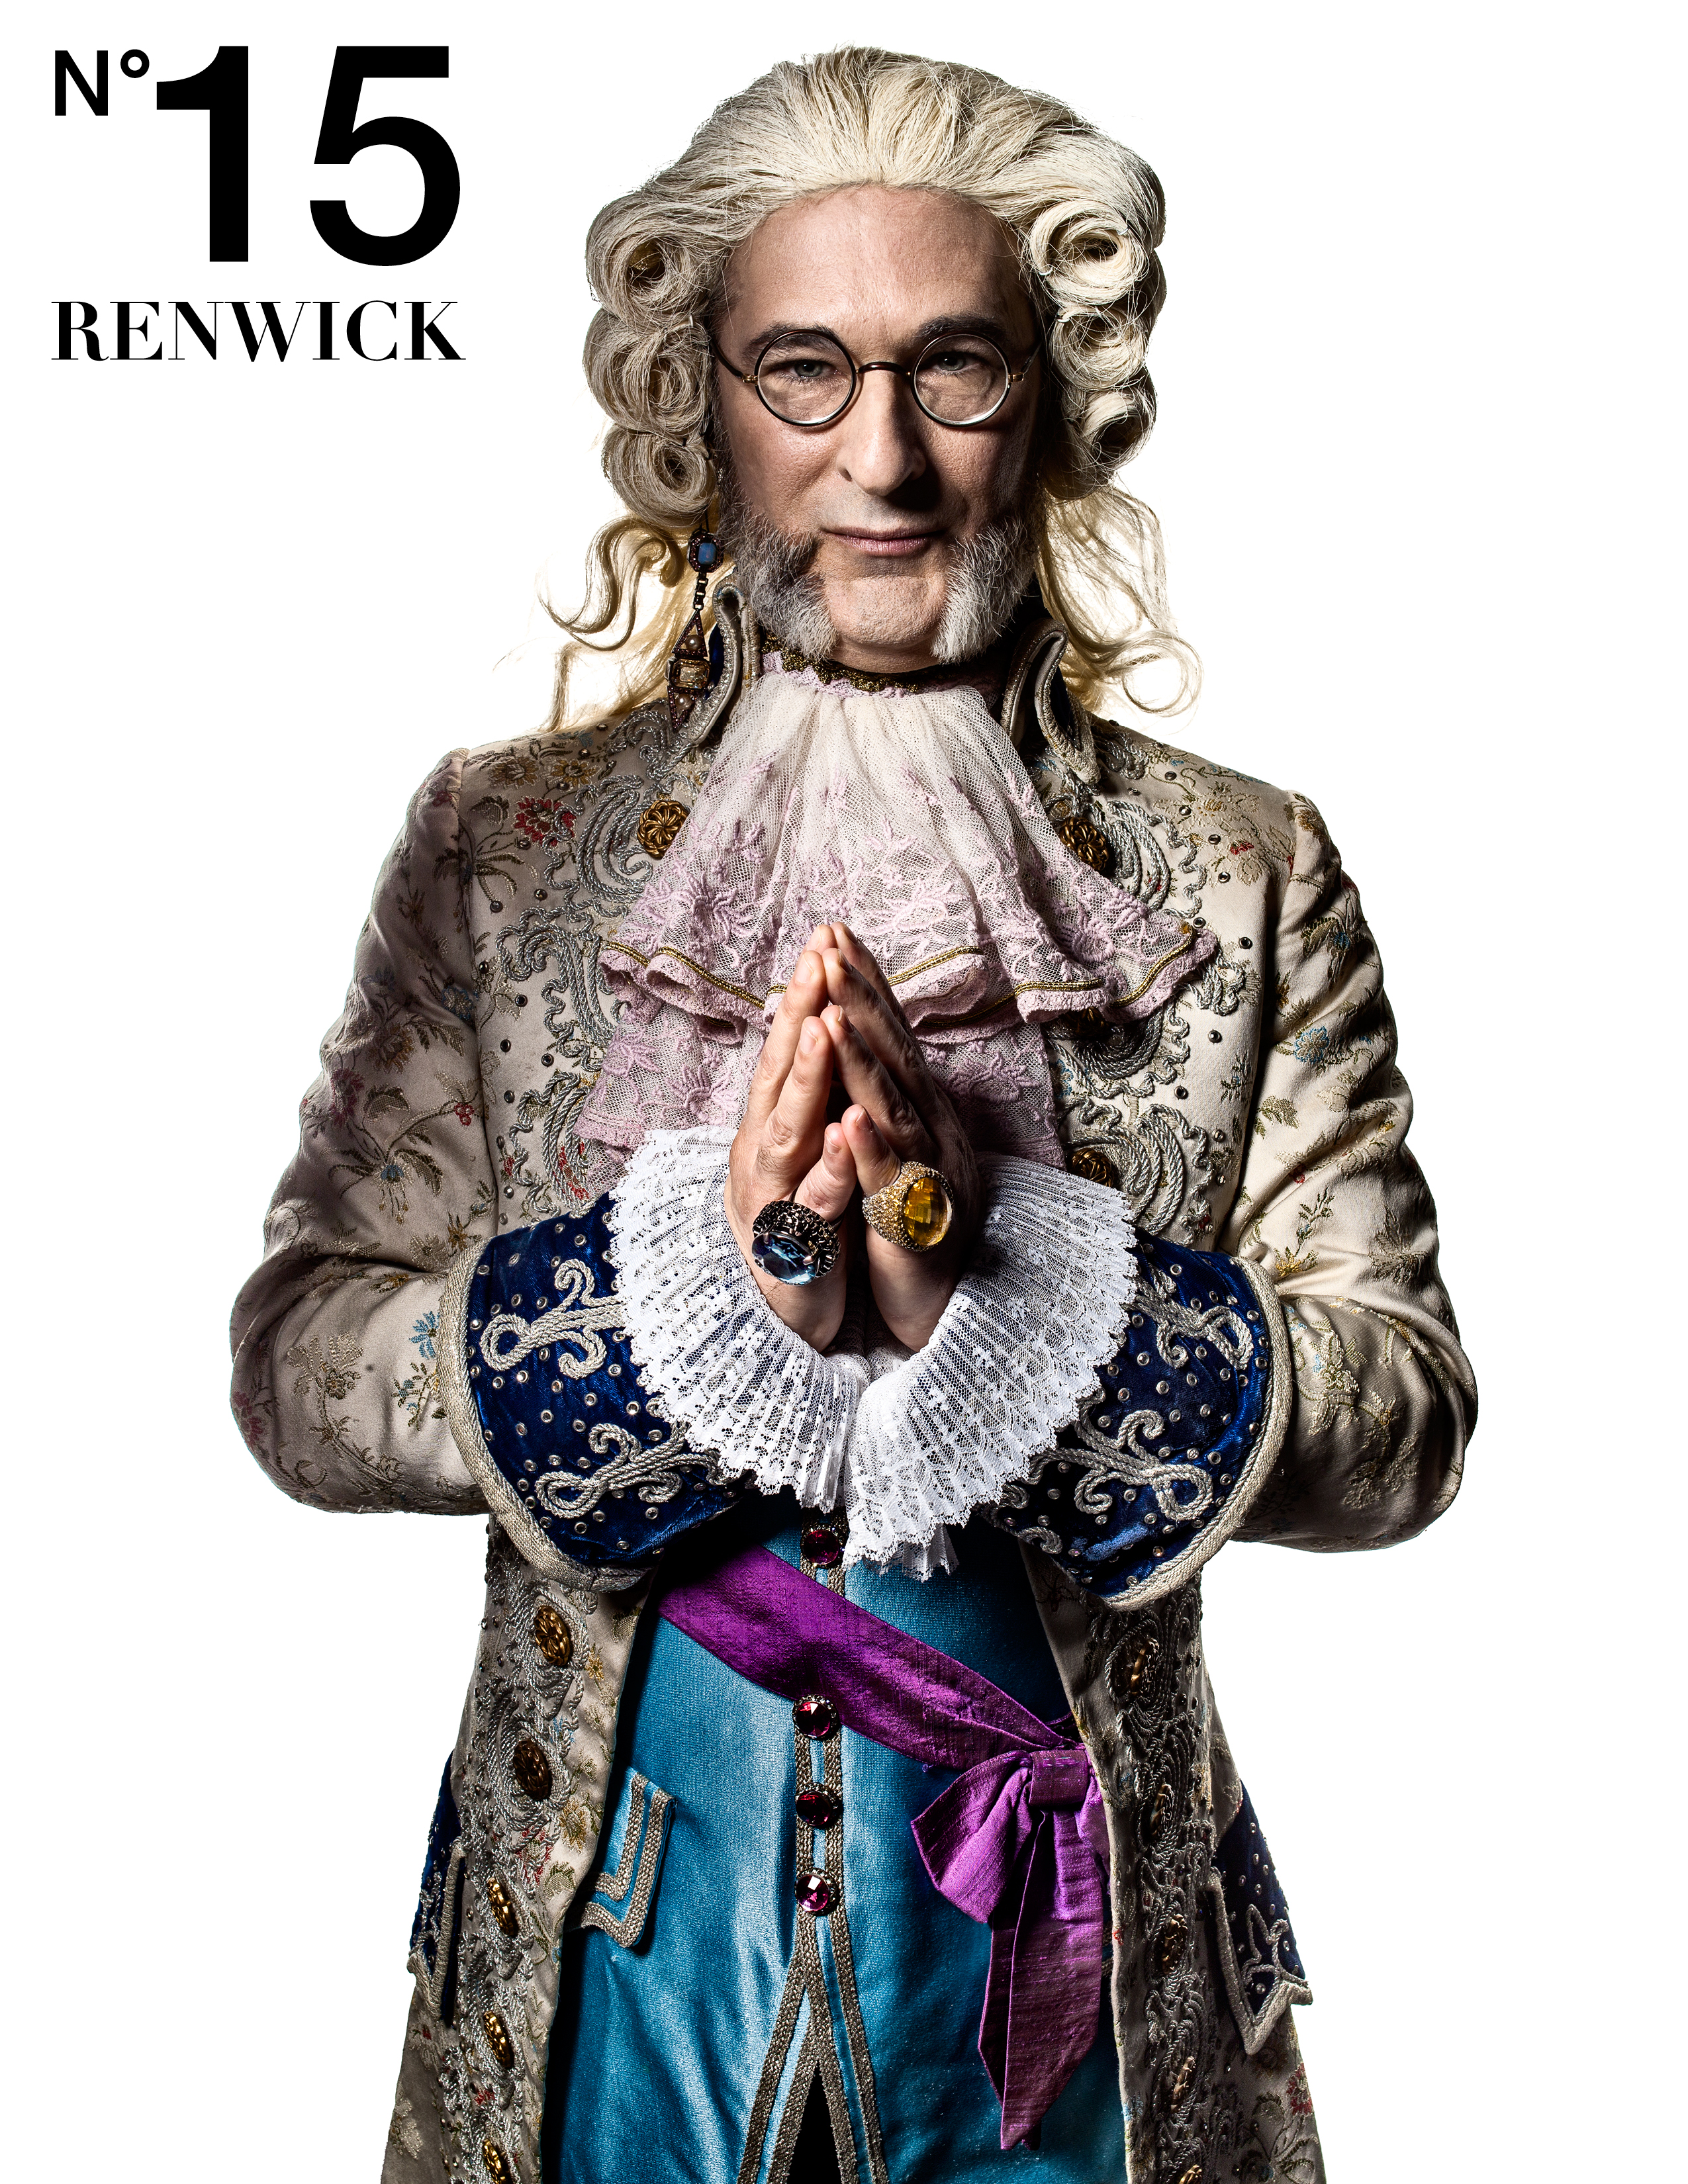 Caption: The astronomer from the 15 Renwick Ad campaign., Credit: MARCH/IF Studio